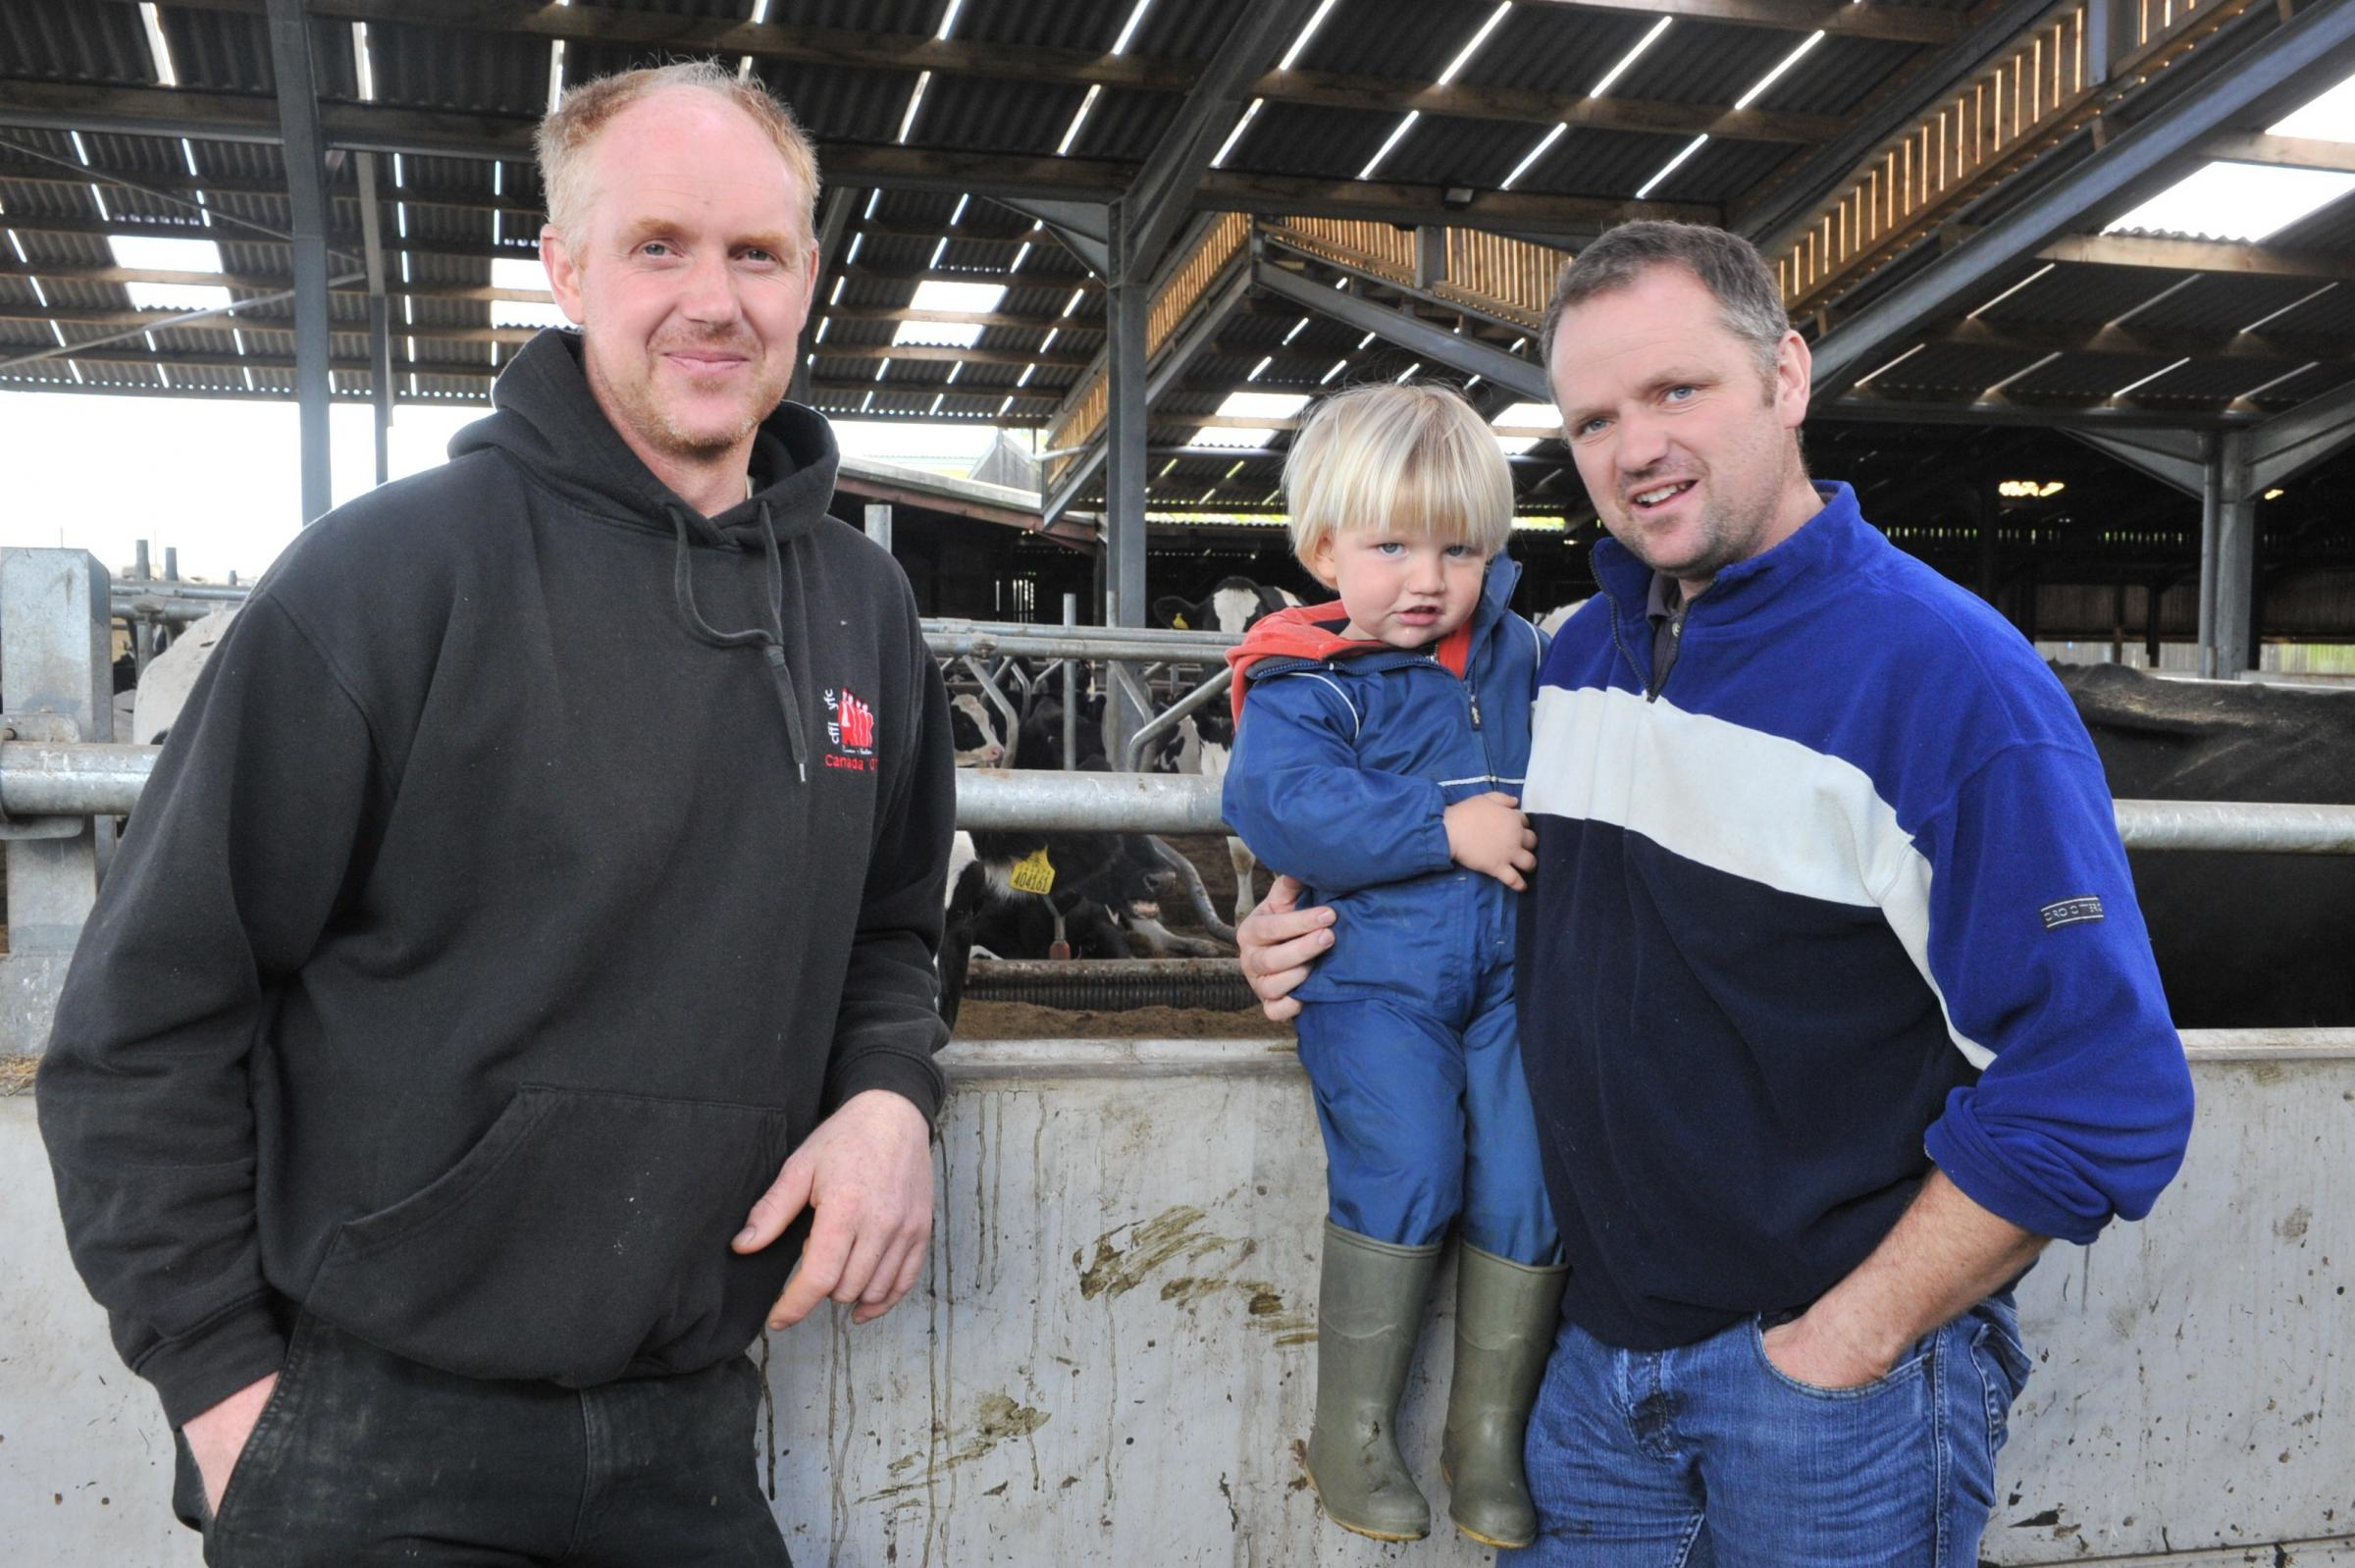 Mike Smith (right), pictured with his brother, Peter, and son, Henry, is seeking funding for a Blue Flag Farming scheme.